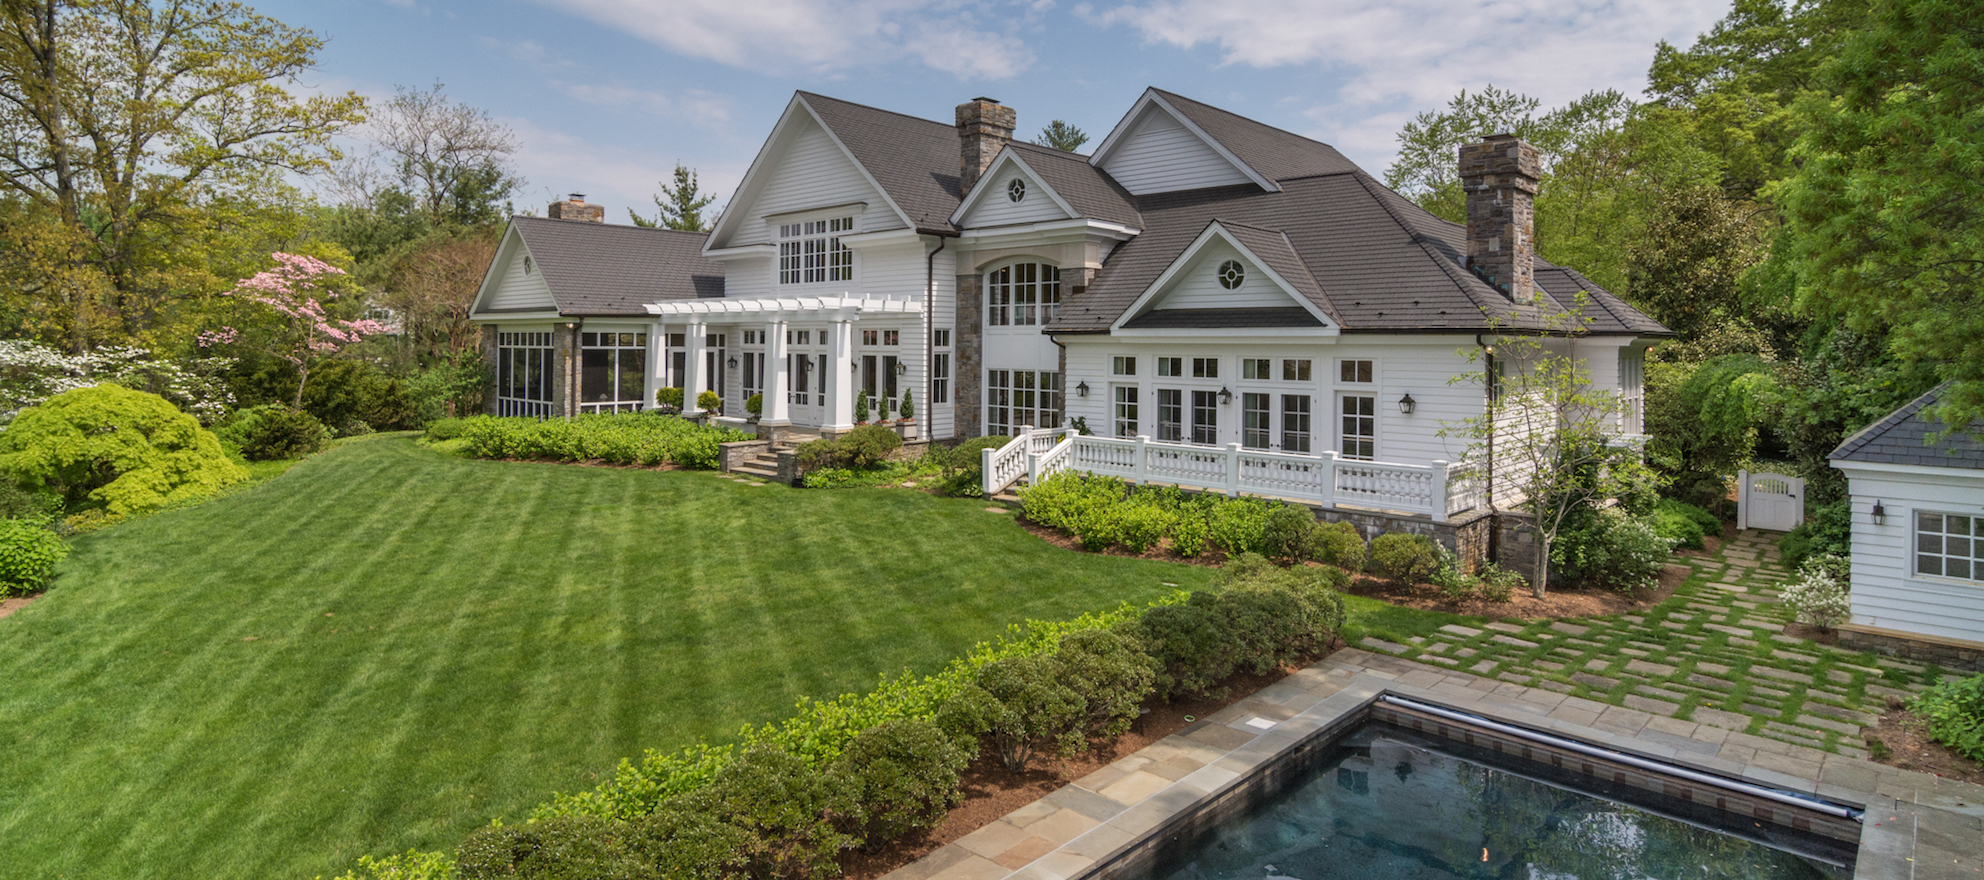 Luxury listing of the day: 5-bedroom Annapolis estate